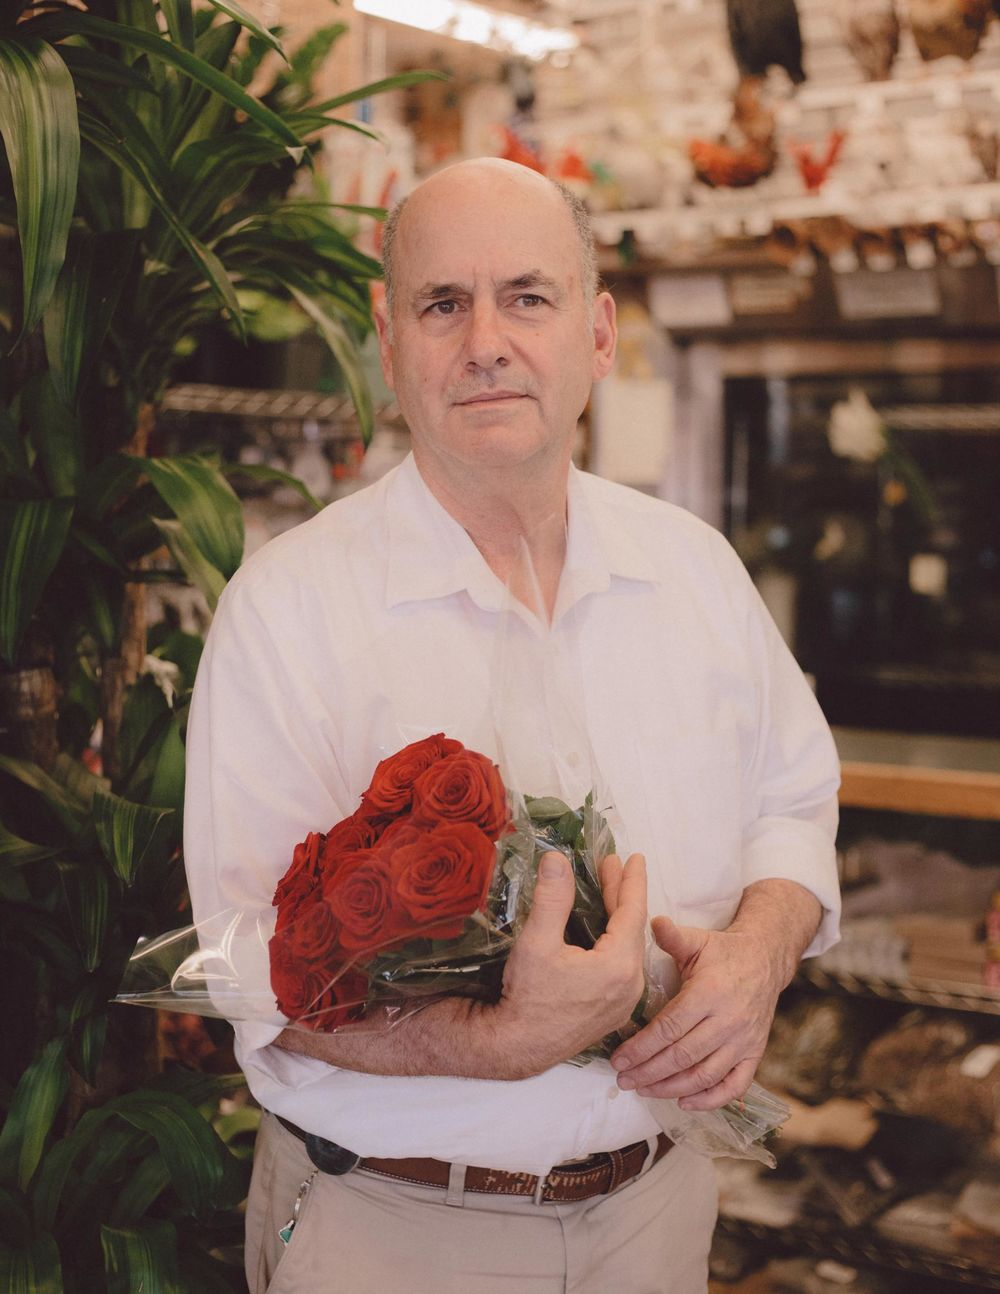 New York's Flower District Is Dying - Bloomberg